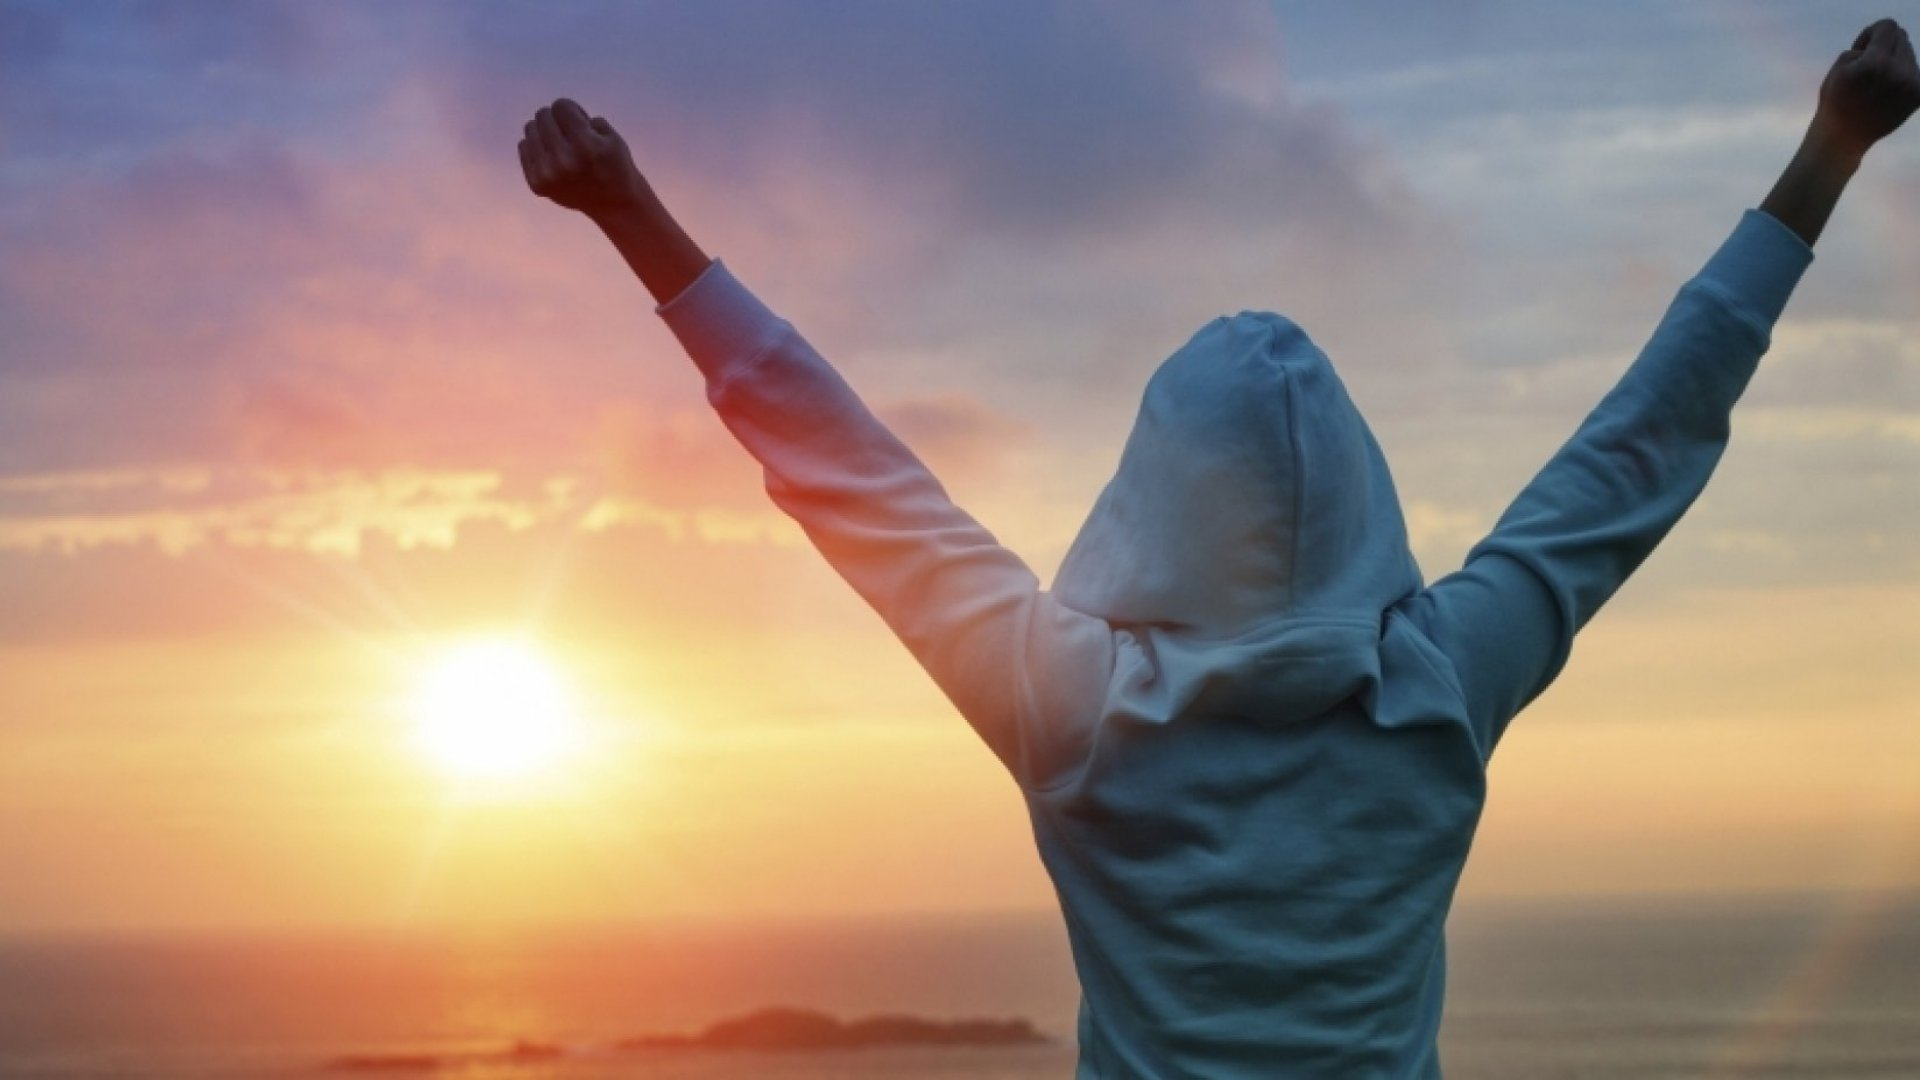 20 Inspiring Quotes About Passion, Opportunity, and Making Things Happen